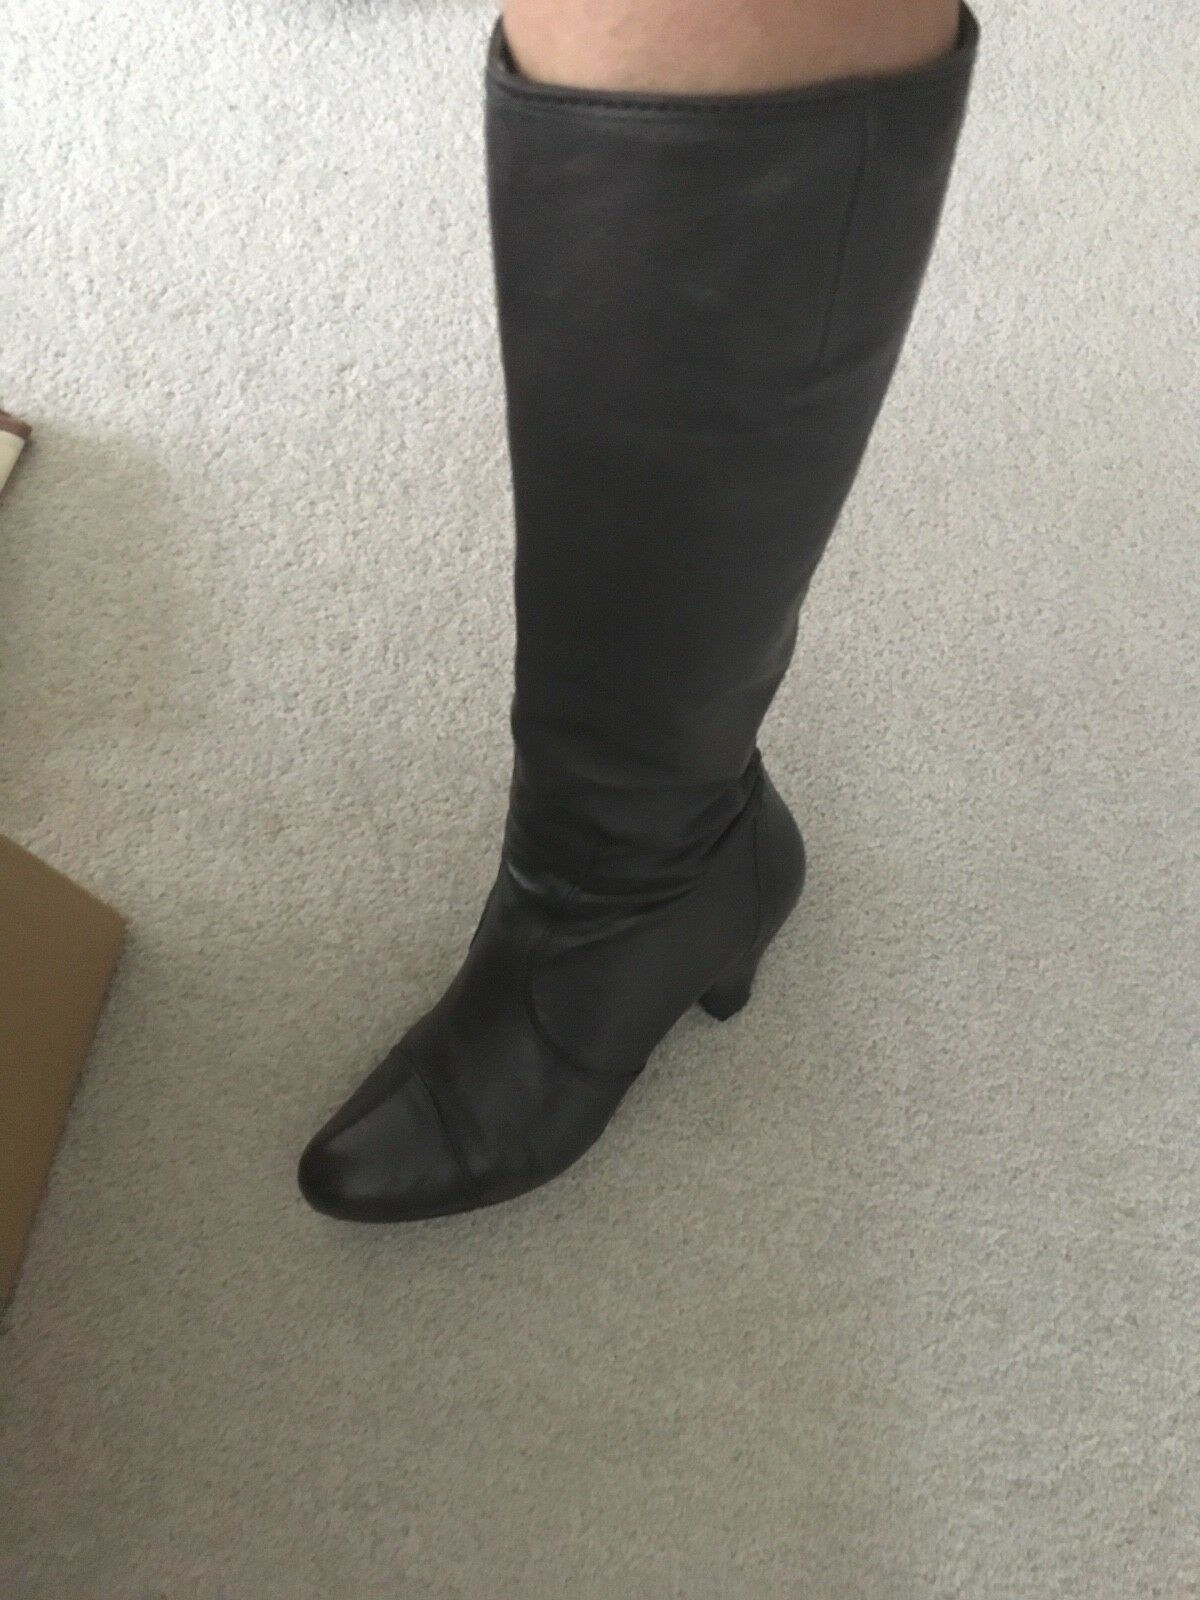 Ladies Bertie Boots size 5 real leather